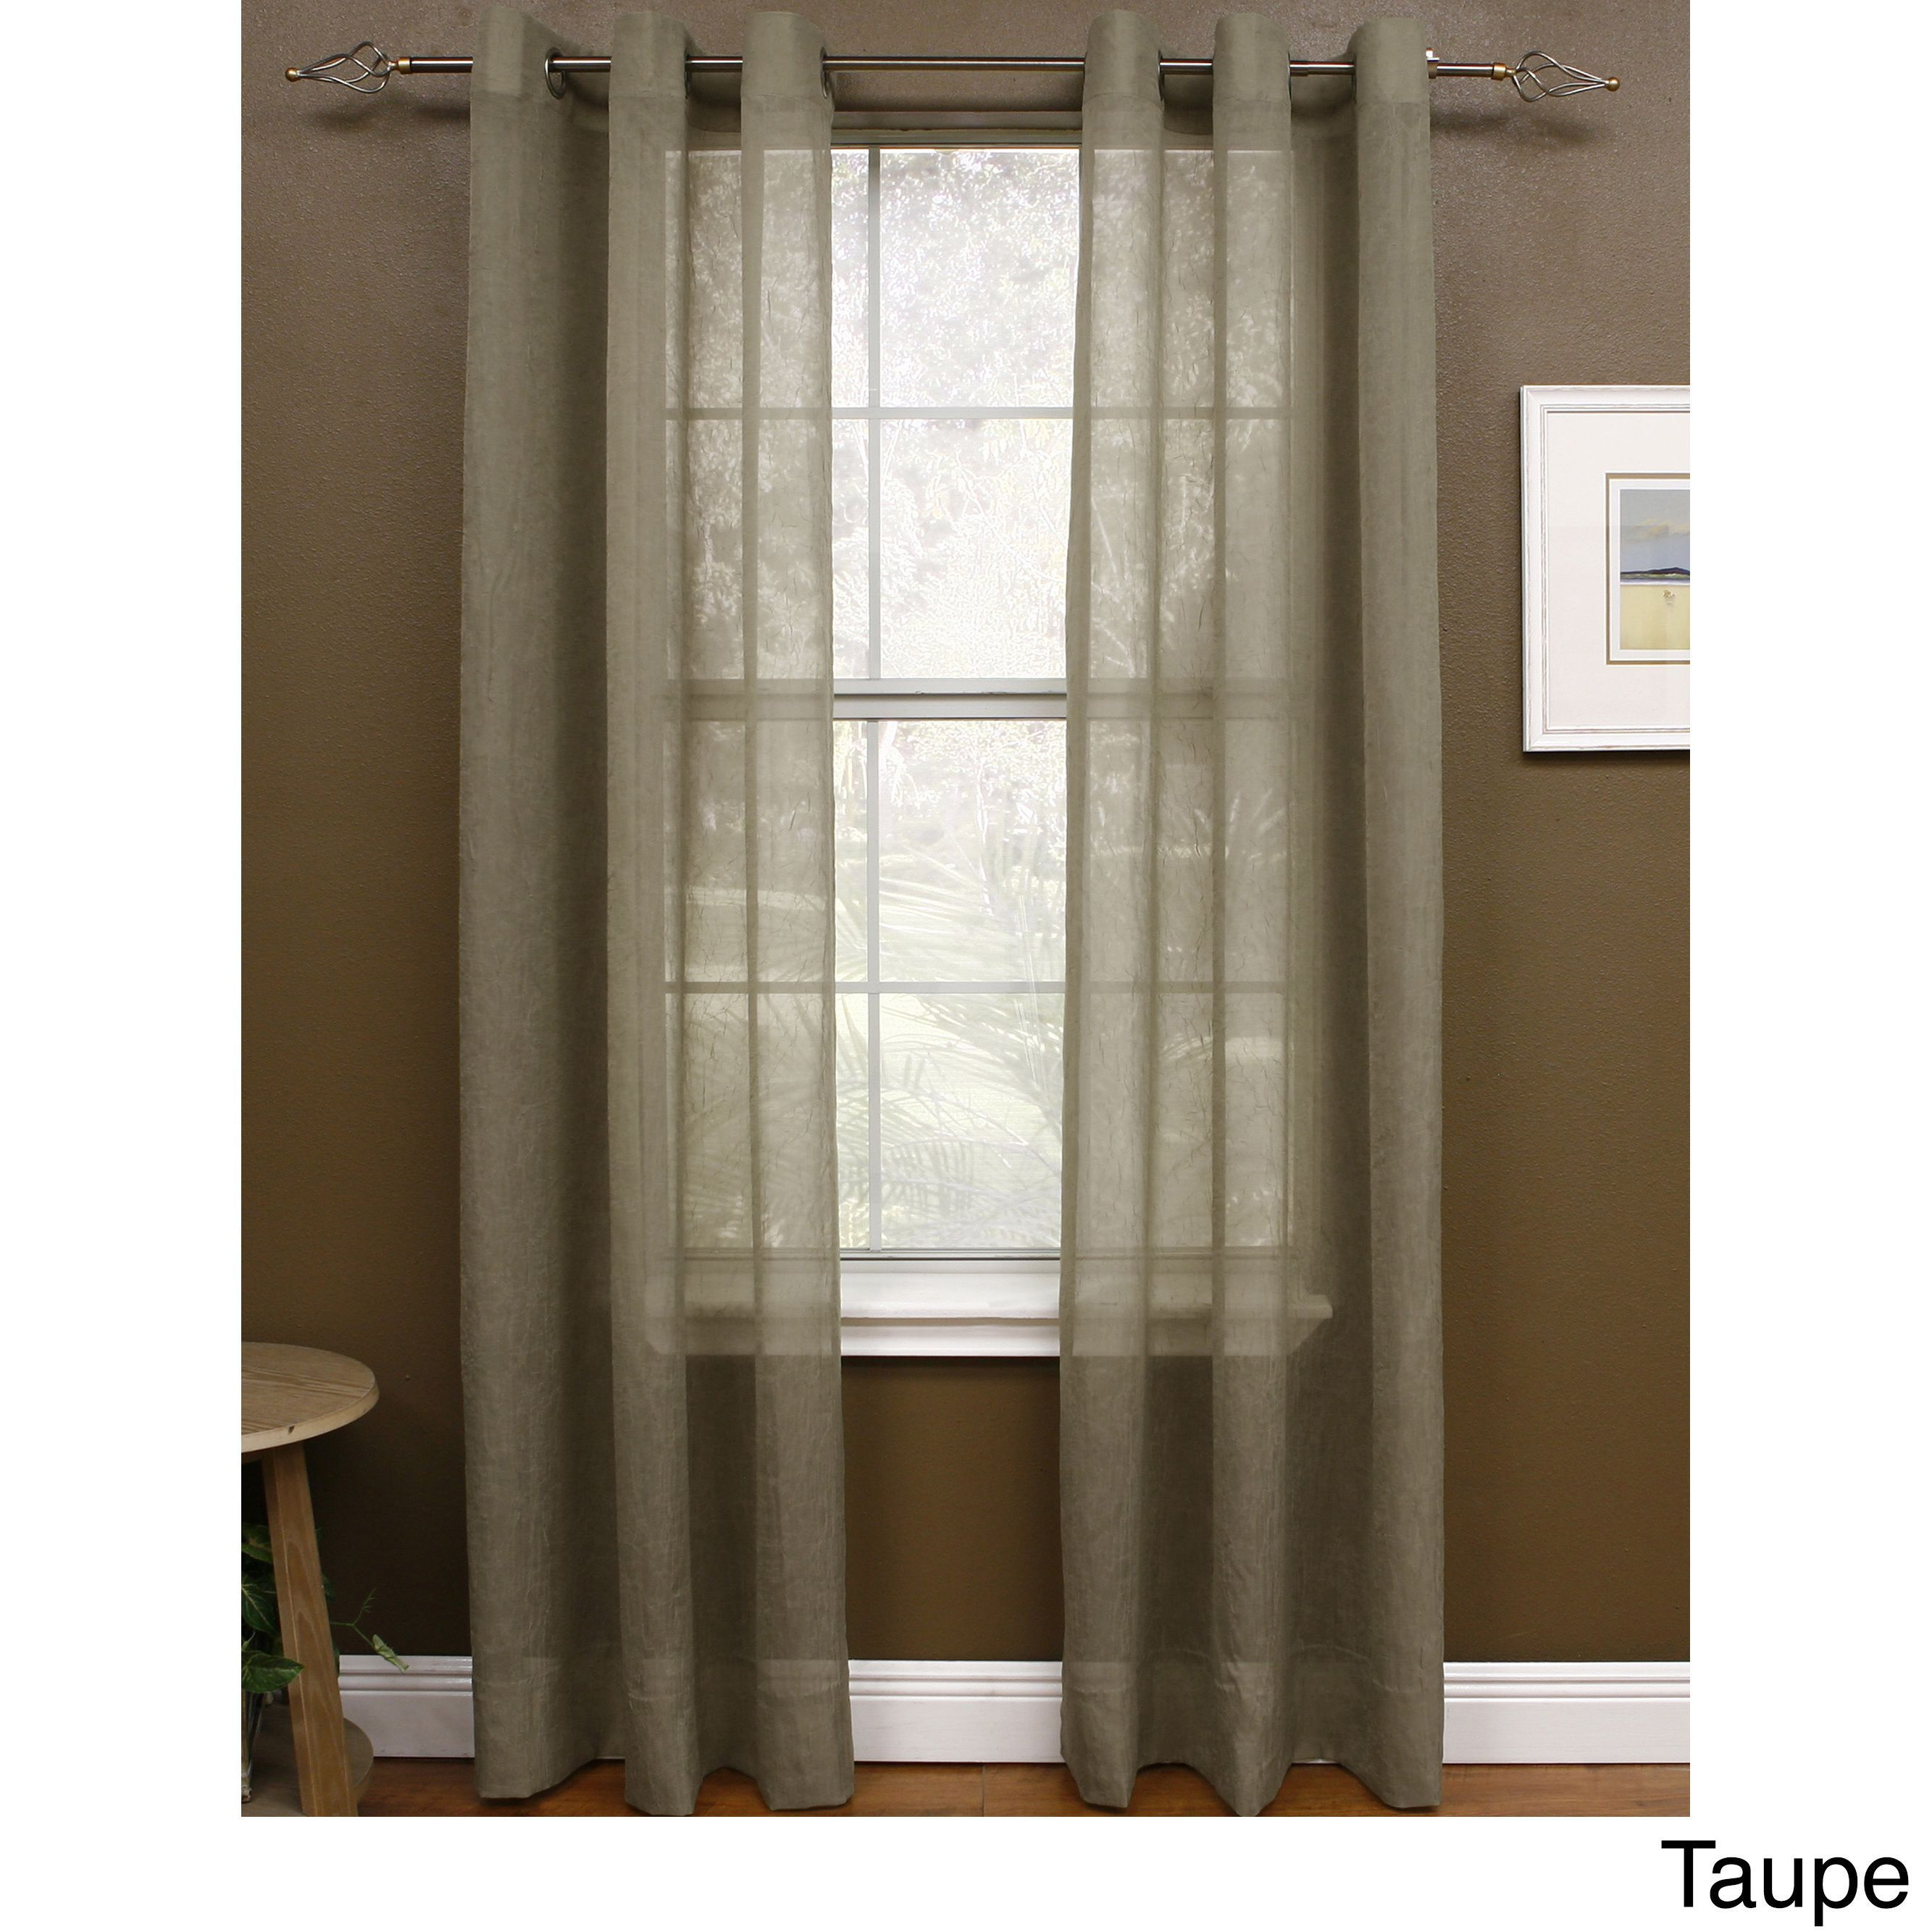 Miller Curtains Preston 84 Inch Grommet Top Sheer Panel 48 X 84 Dijon Polyester Solid Sheer Curtains Curtains Curtains 1 Panel